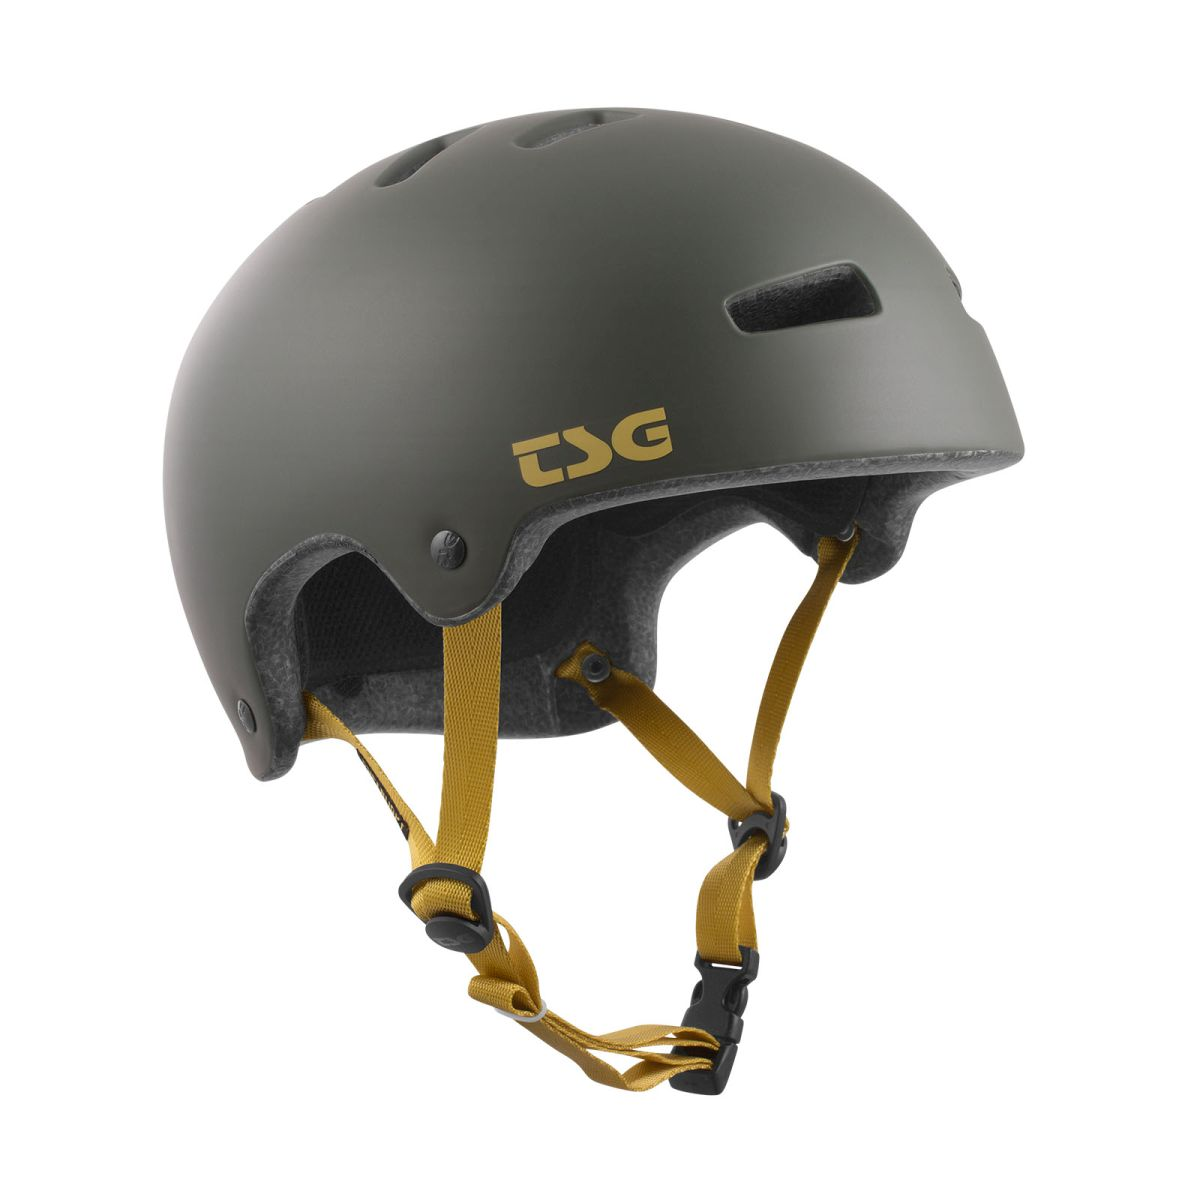 Kask TSG Superlight Solid Color Satin Stone Green